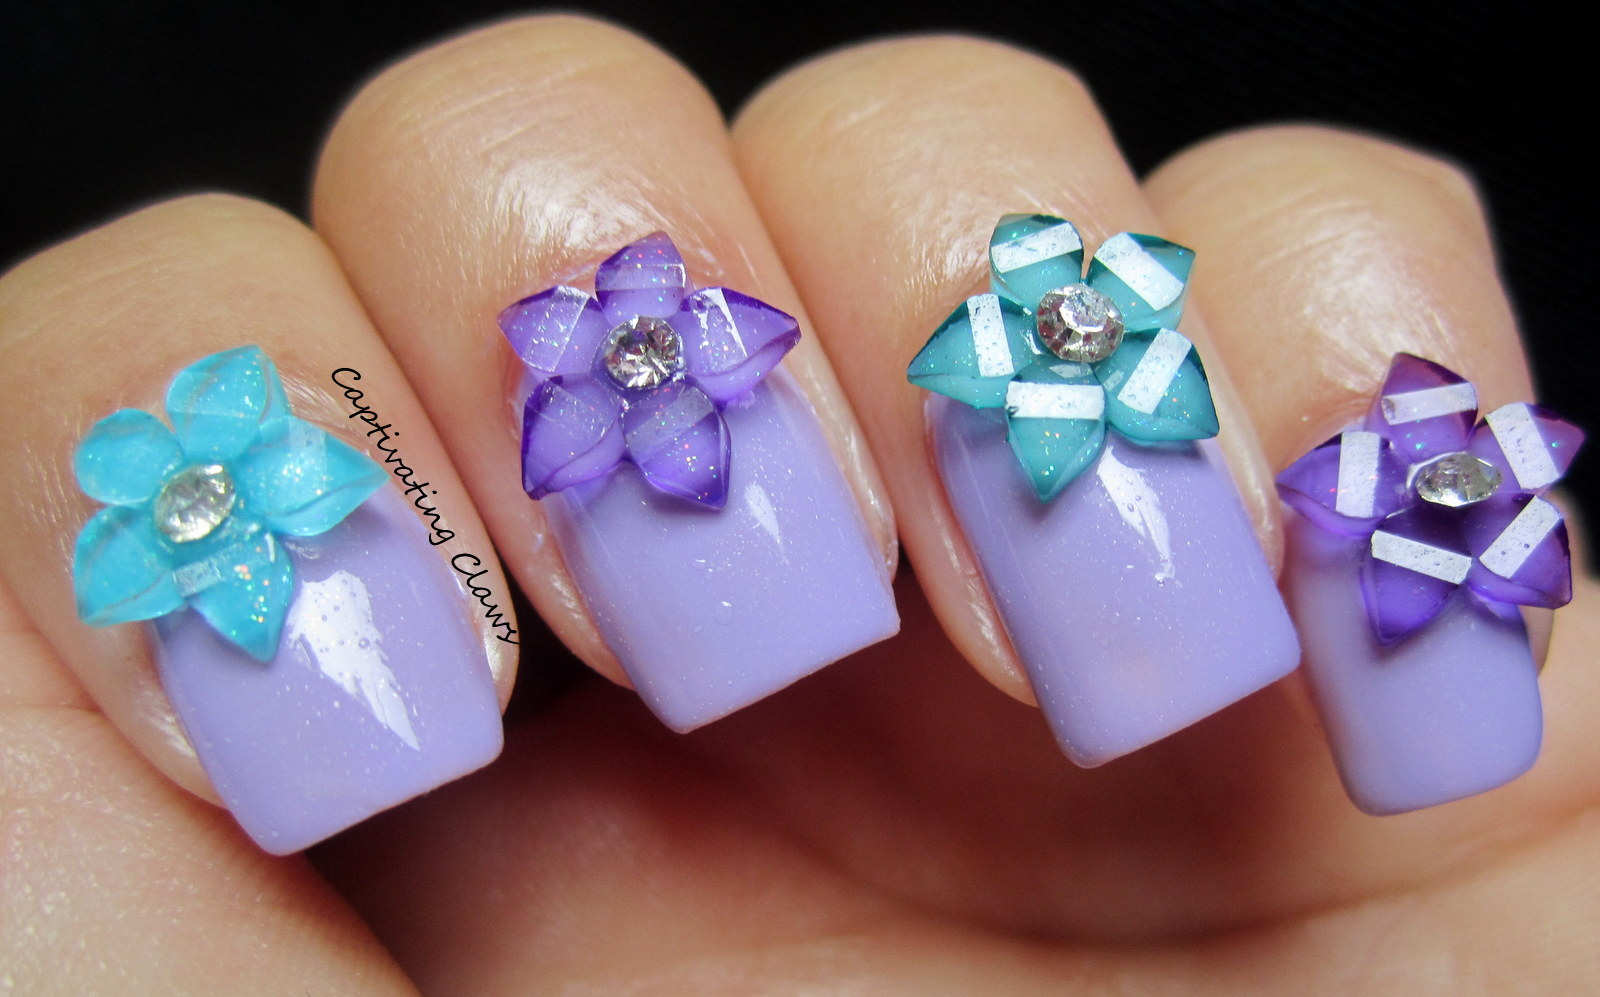 Captivating claws 3d nail art with flowers and bows from born pretty prinsesfo Image collections